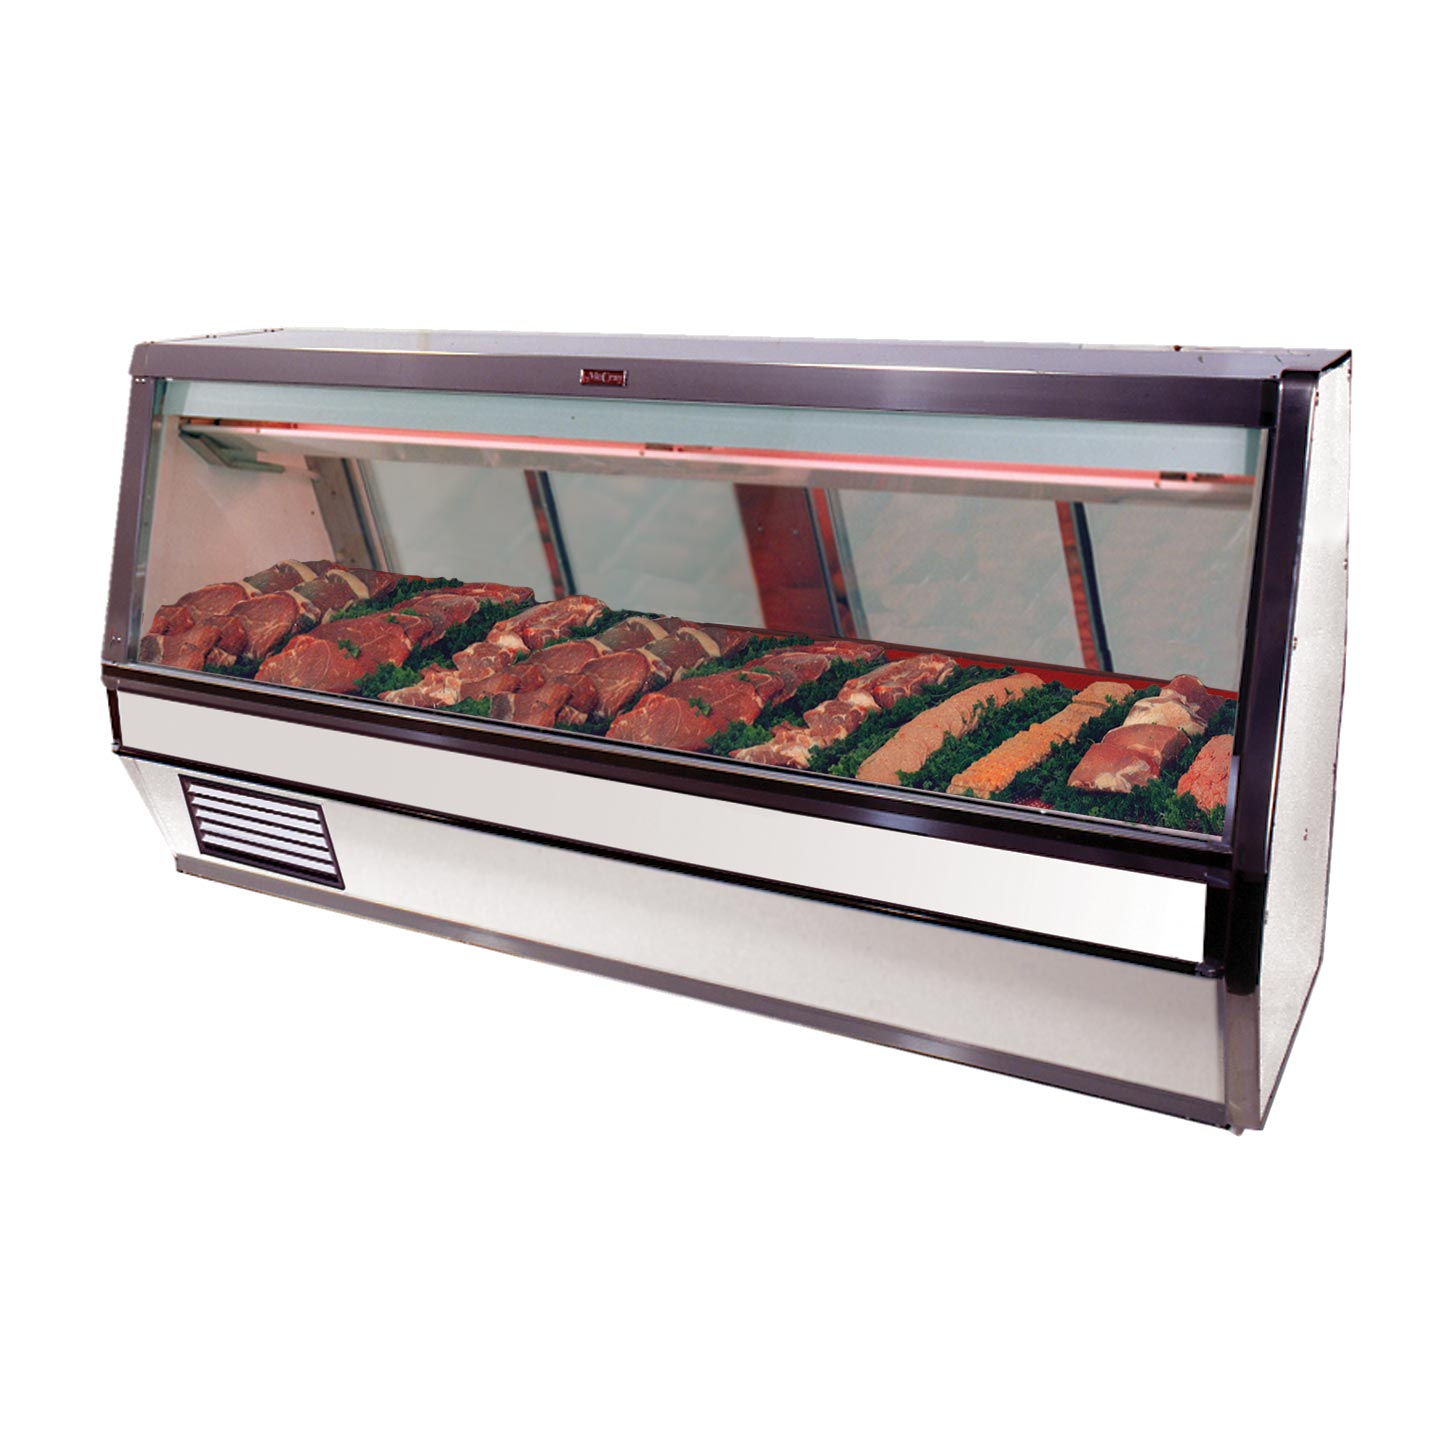 Howard-McCray SC-CMS40E-6-LED display case, red meat deli